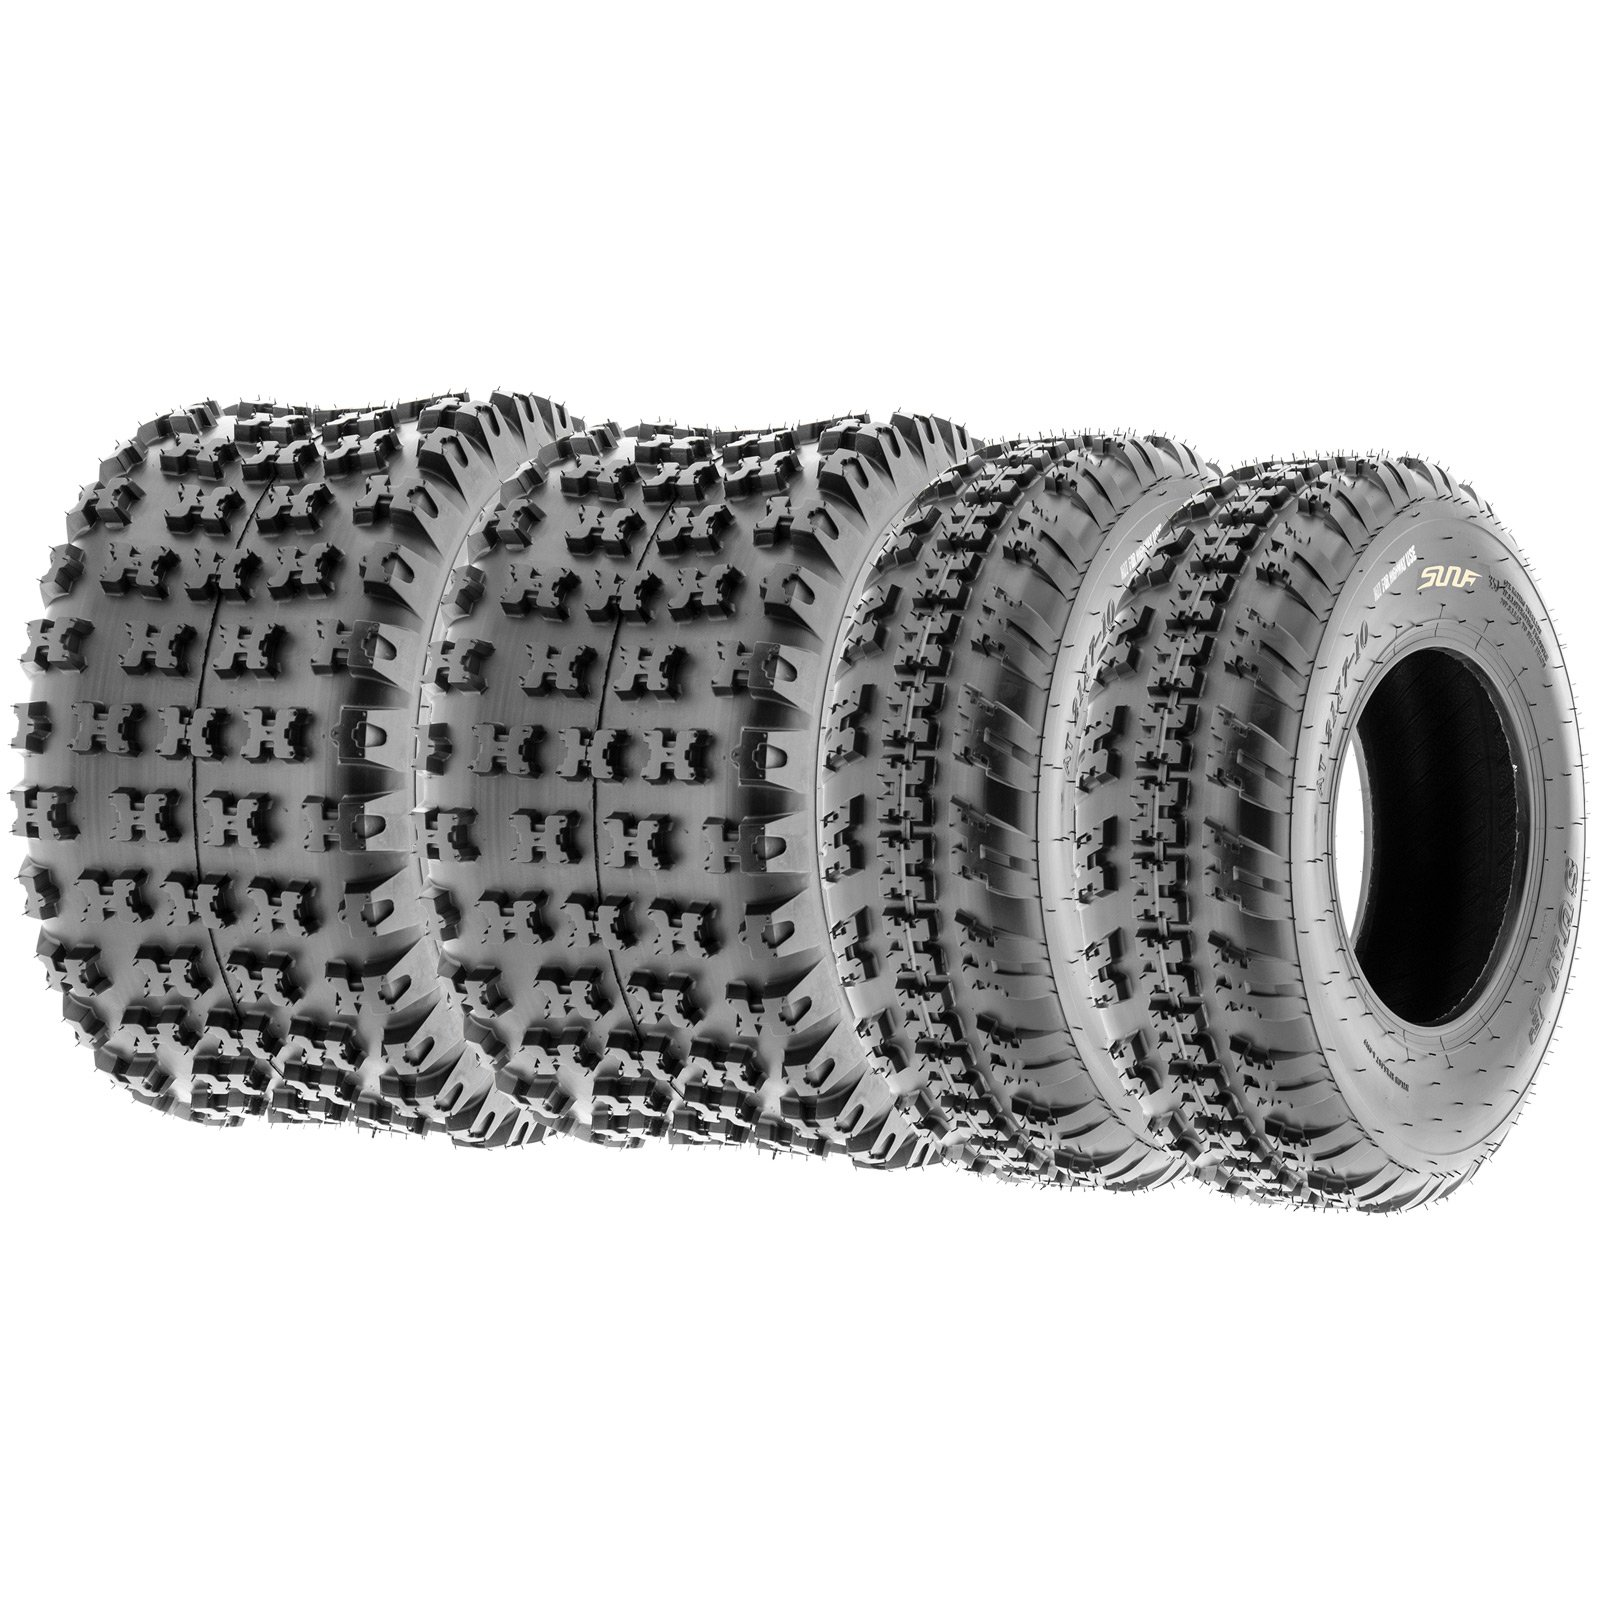 SunF Knobby Sport ATV Tires 20x6-10 & 18x10-8 4/6 PR A031 (Complete set of 4) by SunF (Image #1)